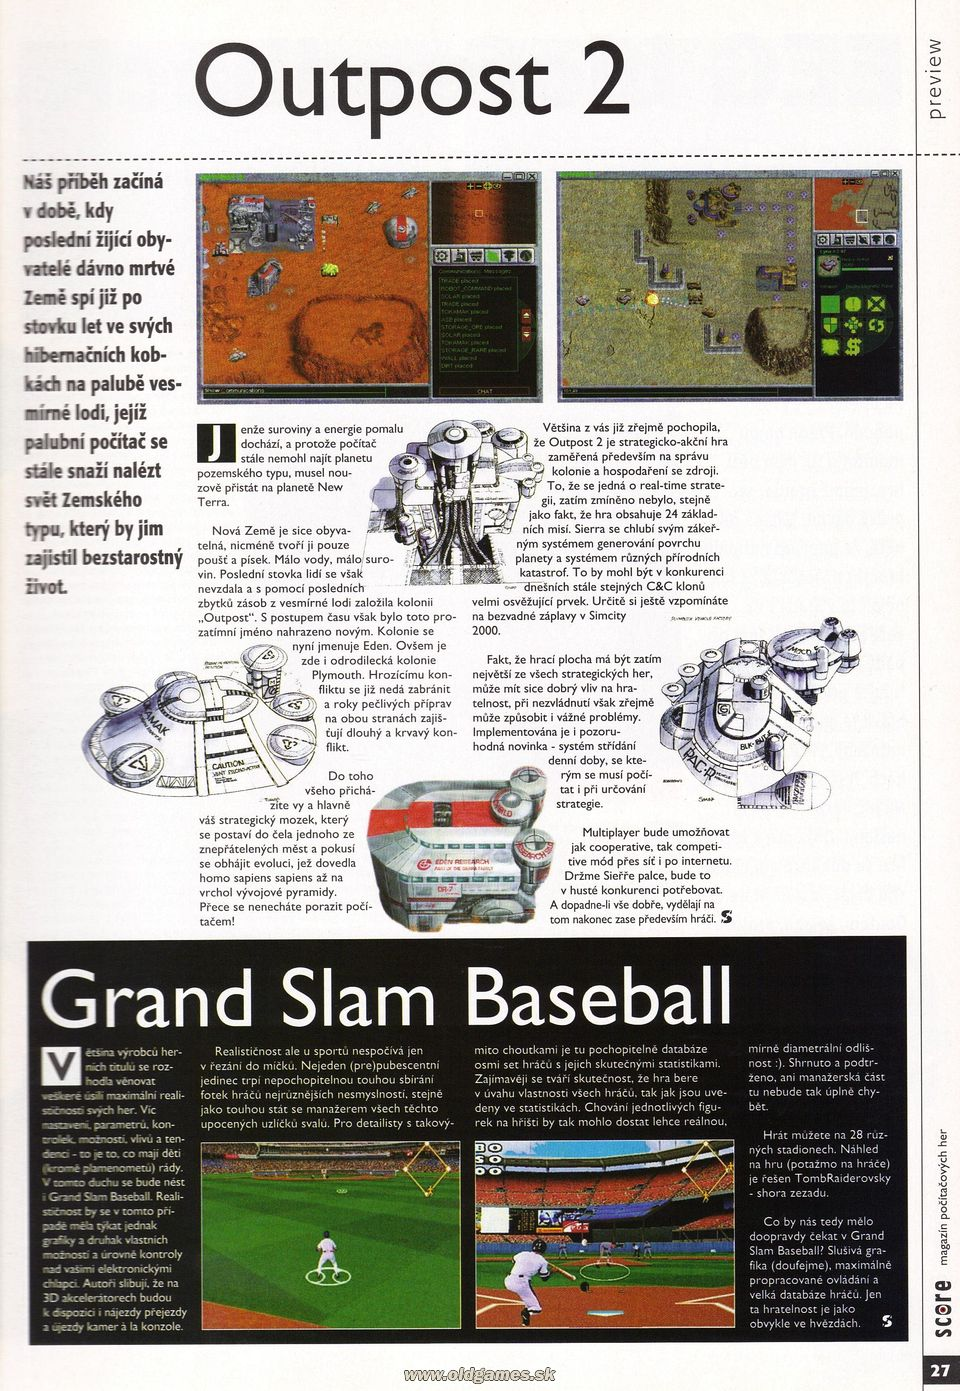 Preview: Outpost 2, Grand Slam Baseball